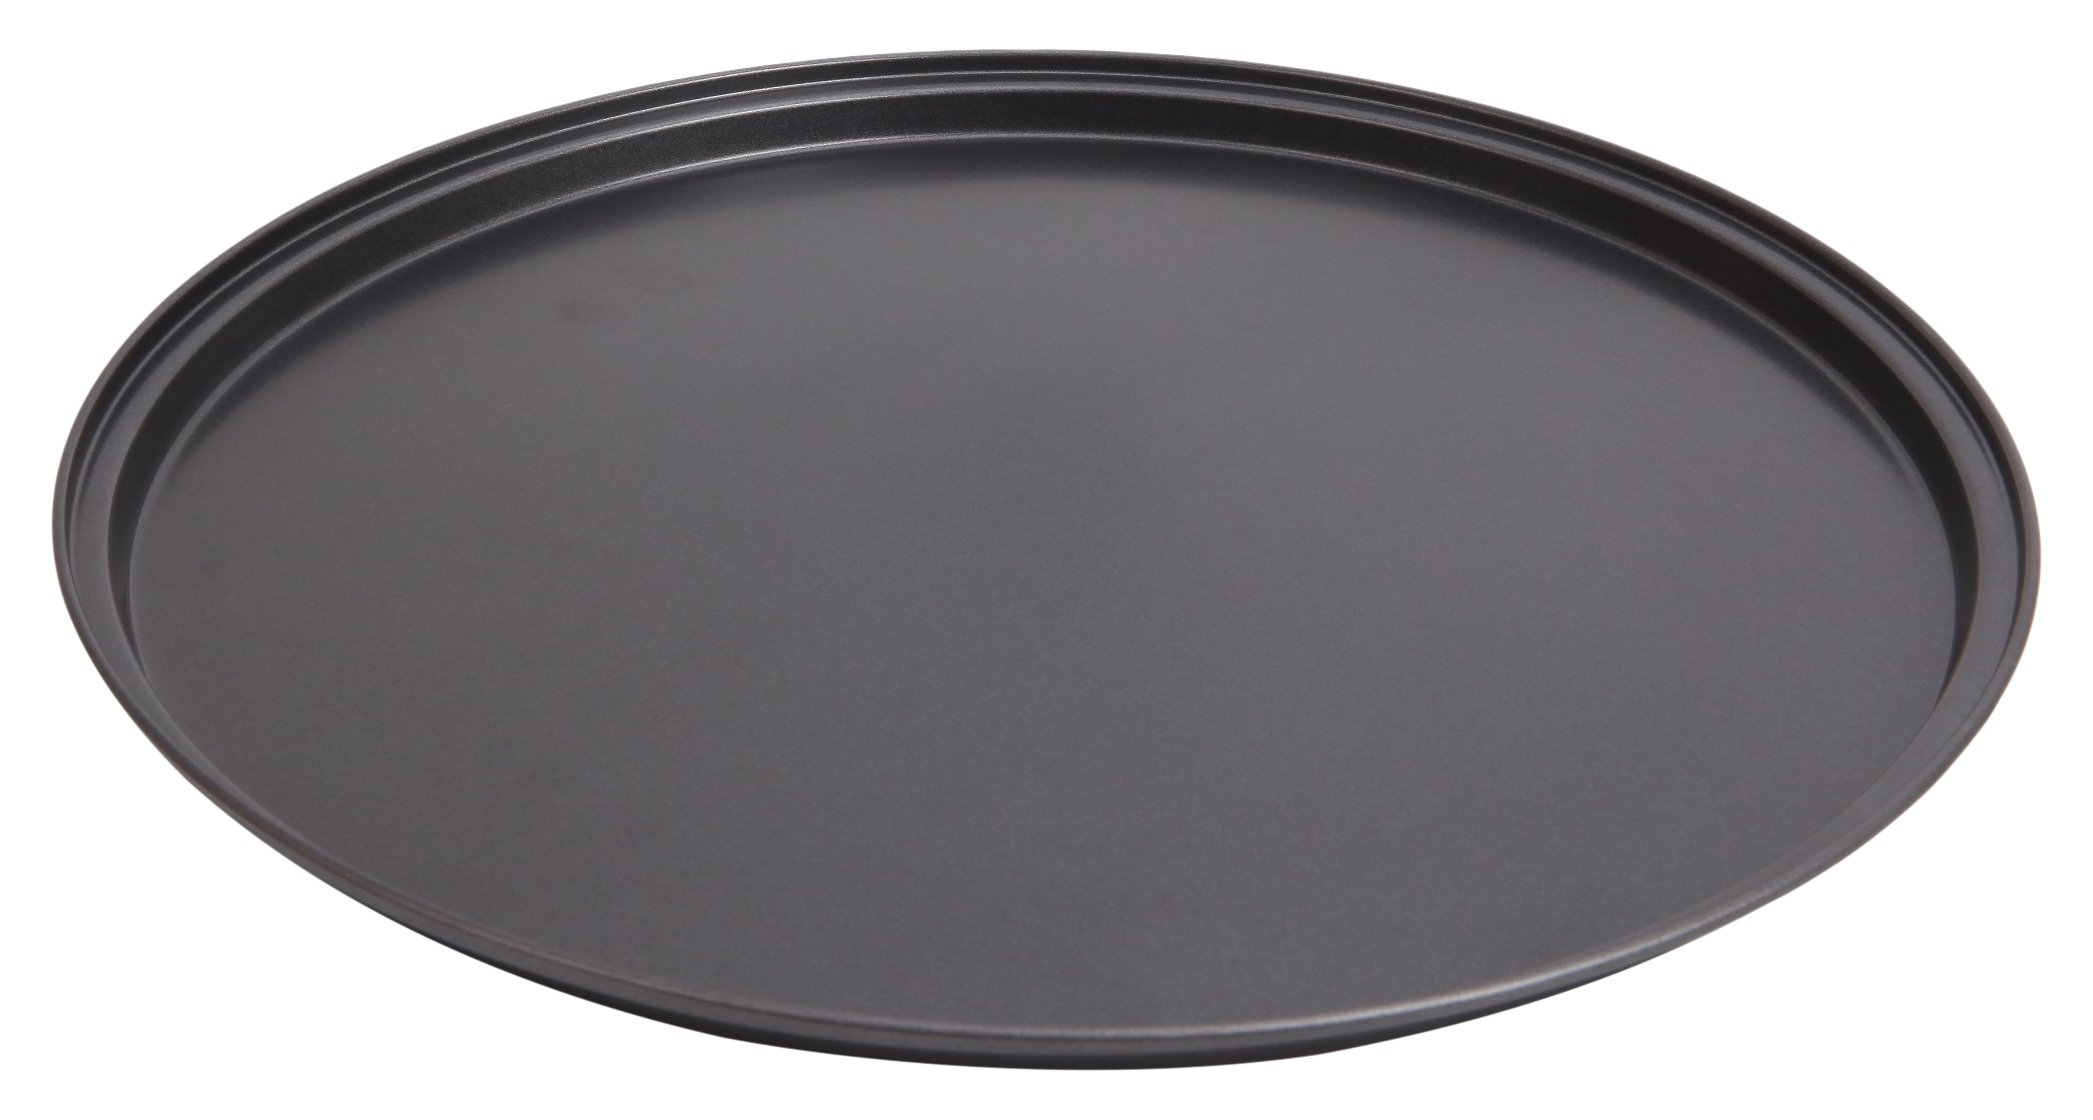 Wee's Beyond 6852-C Non-Stick Easy Release Pizza Pan 13.5'', Dark Gray